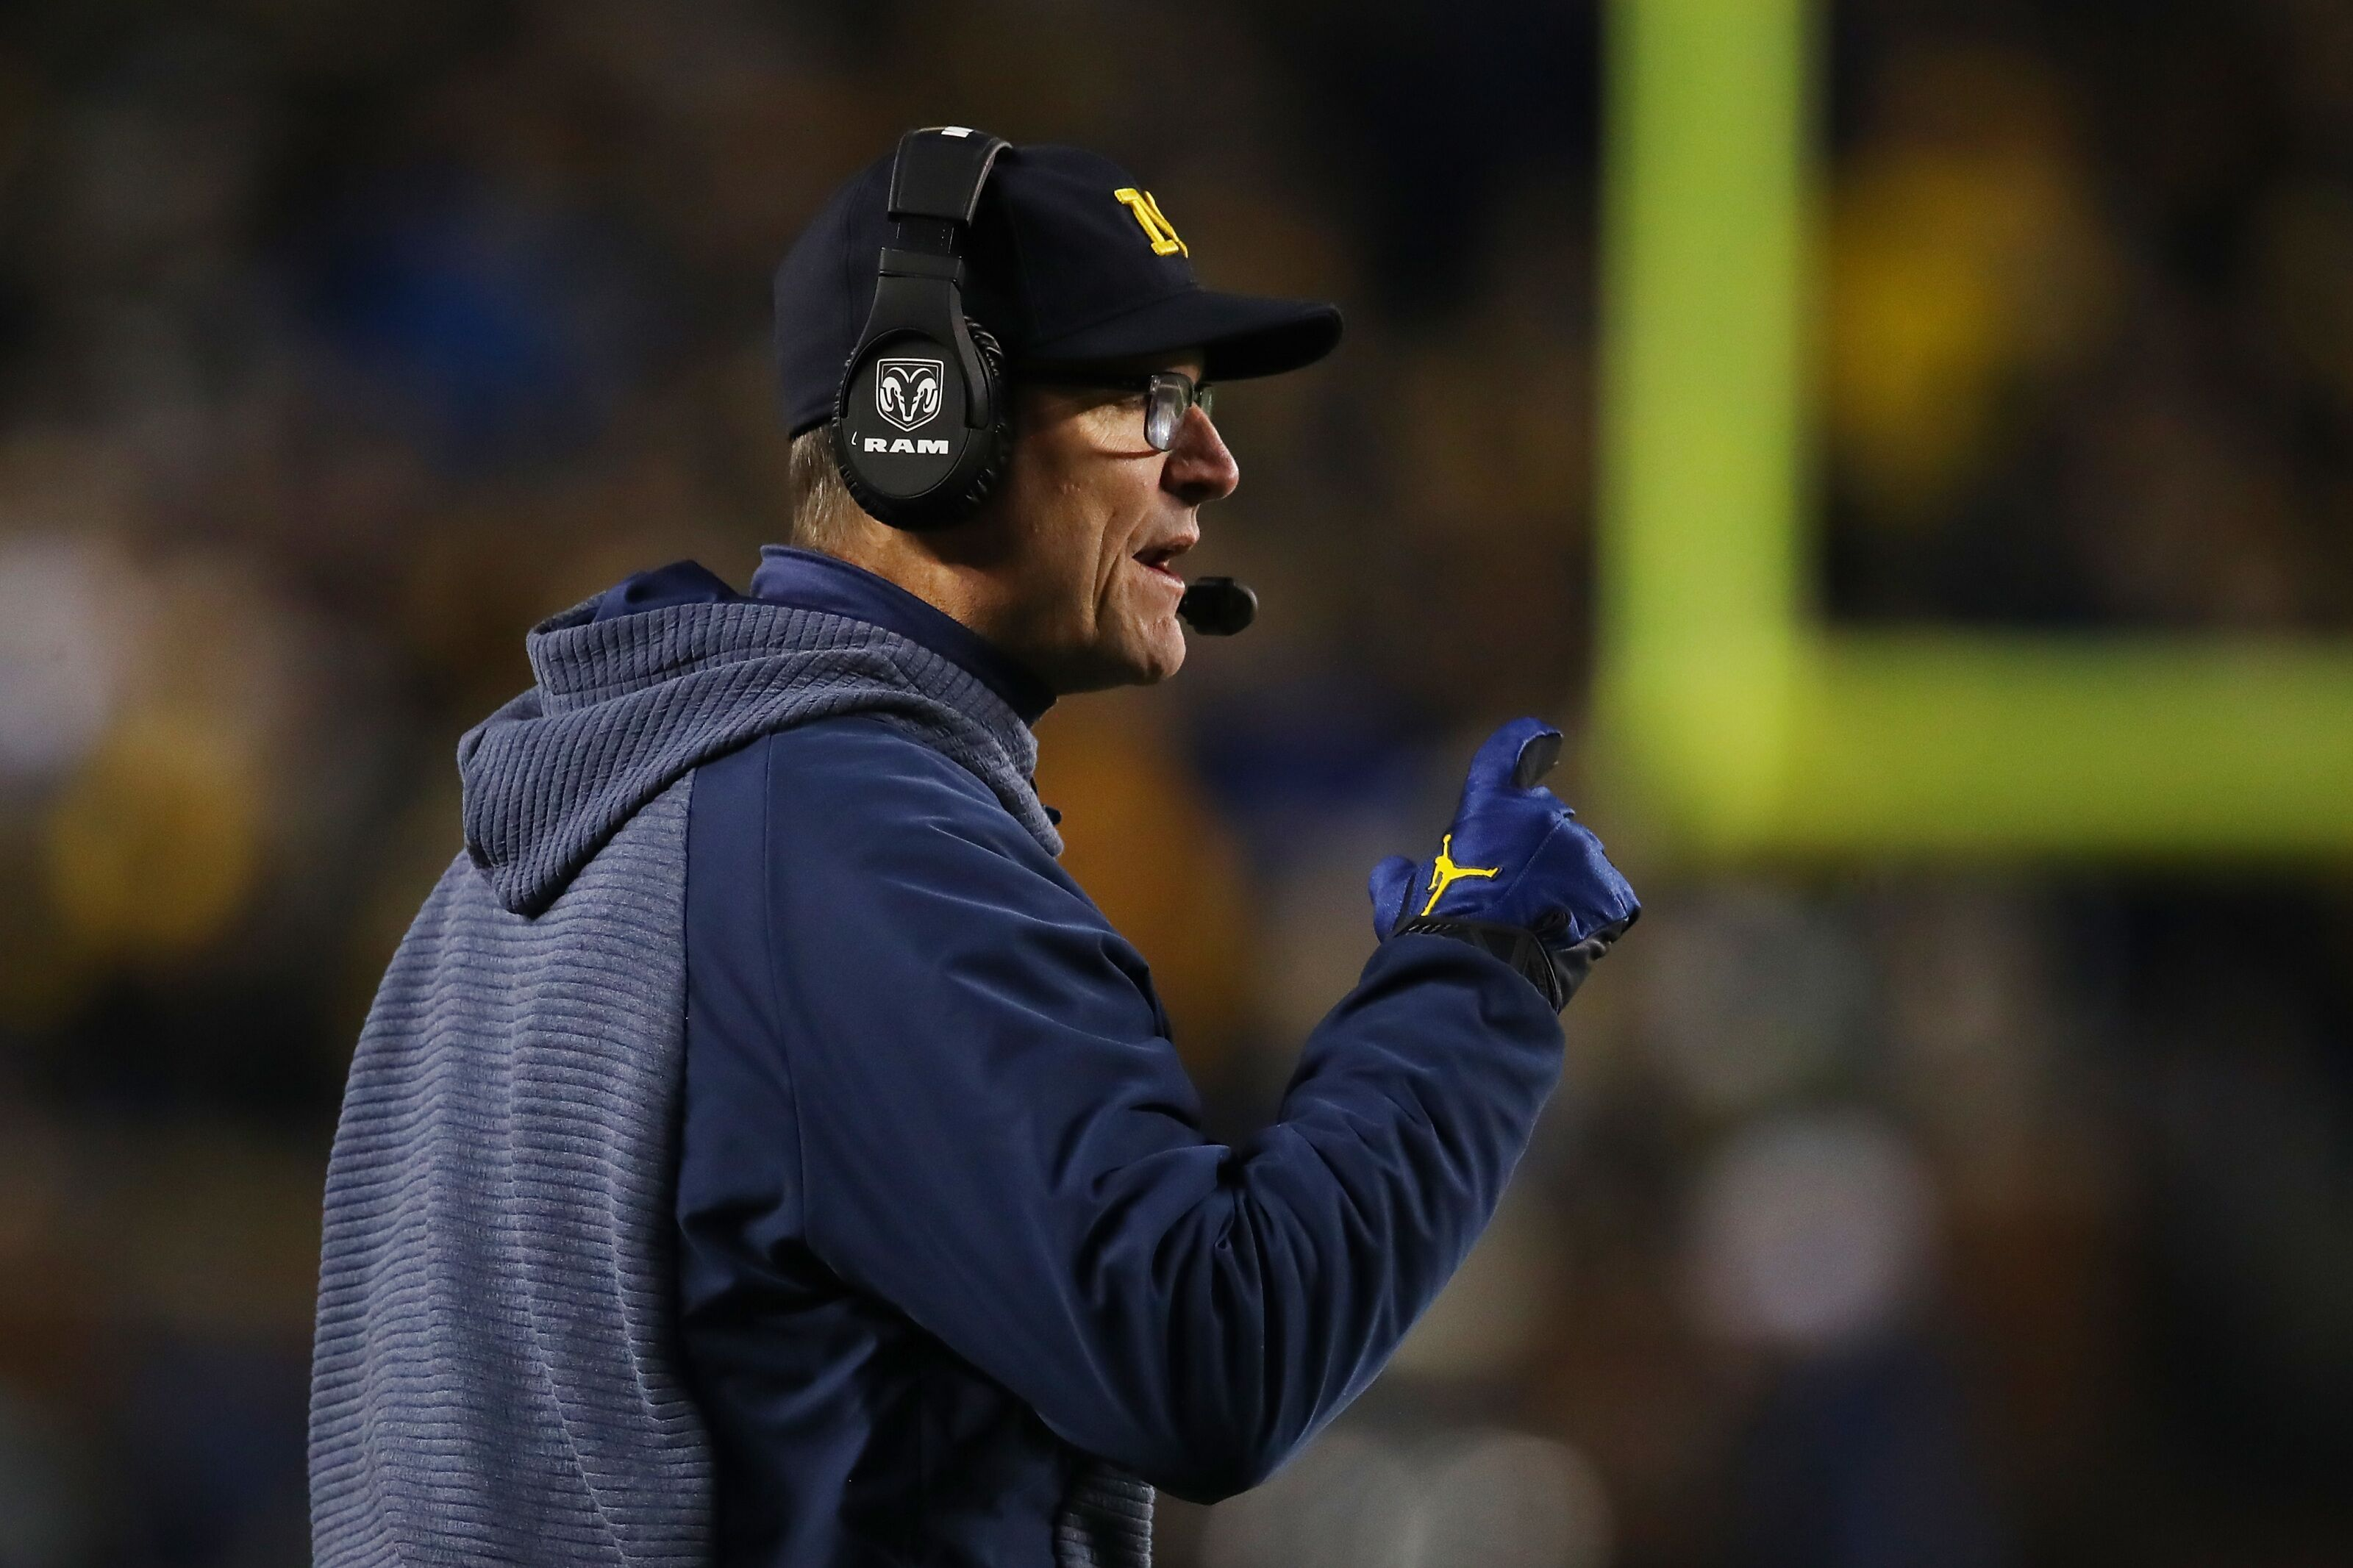 Michigan Football: For Jim Harbaugh, it's now or never